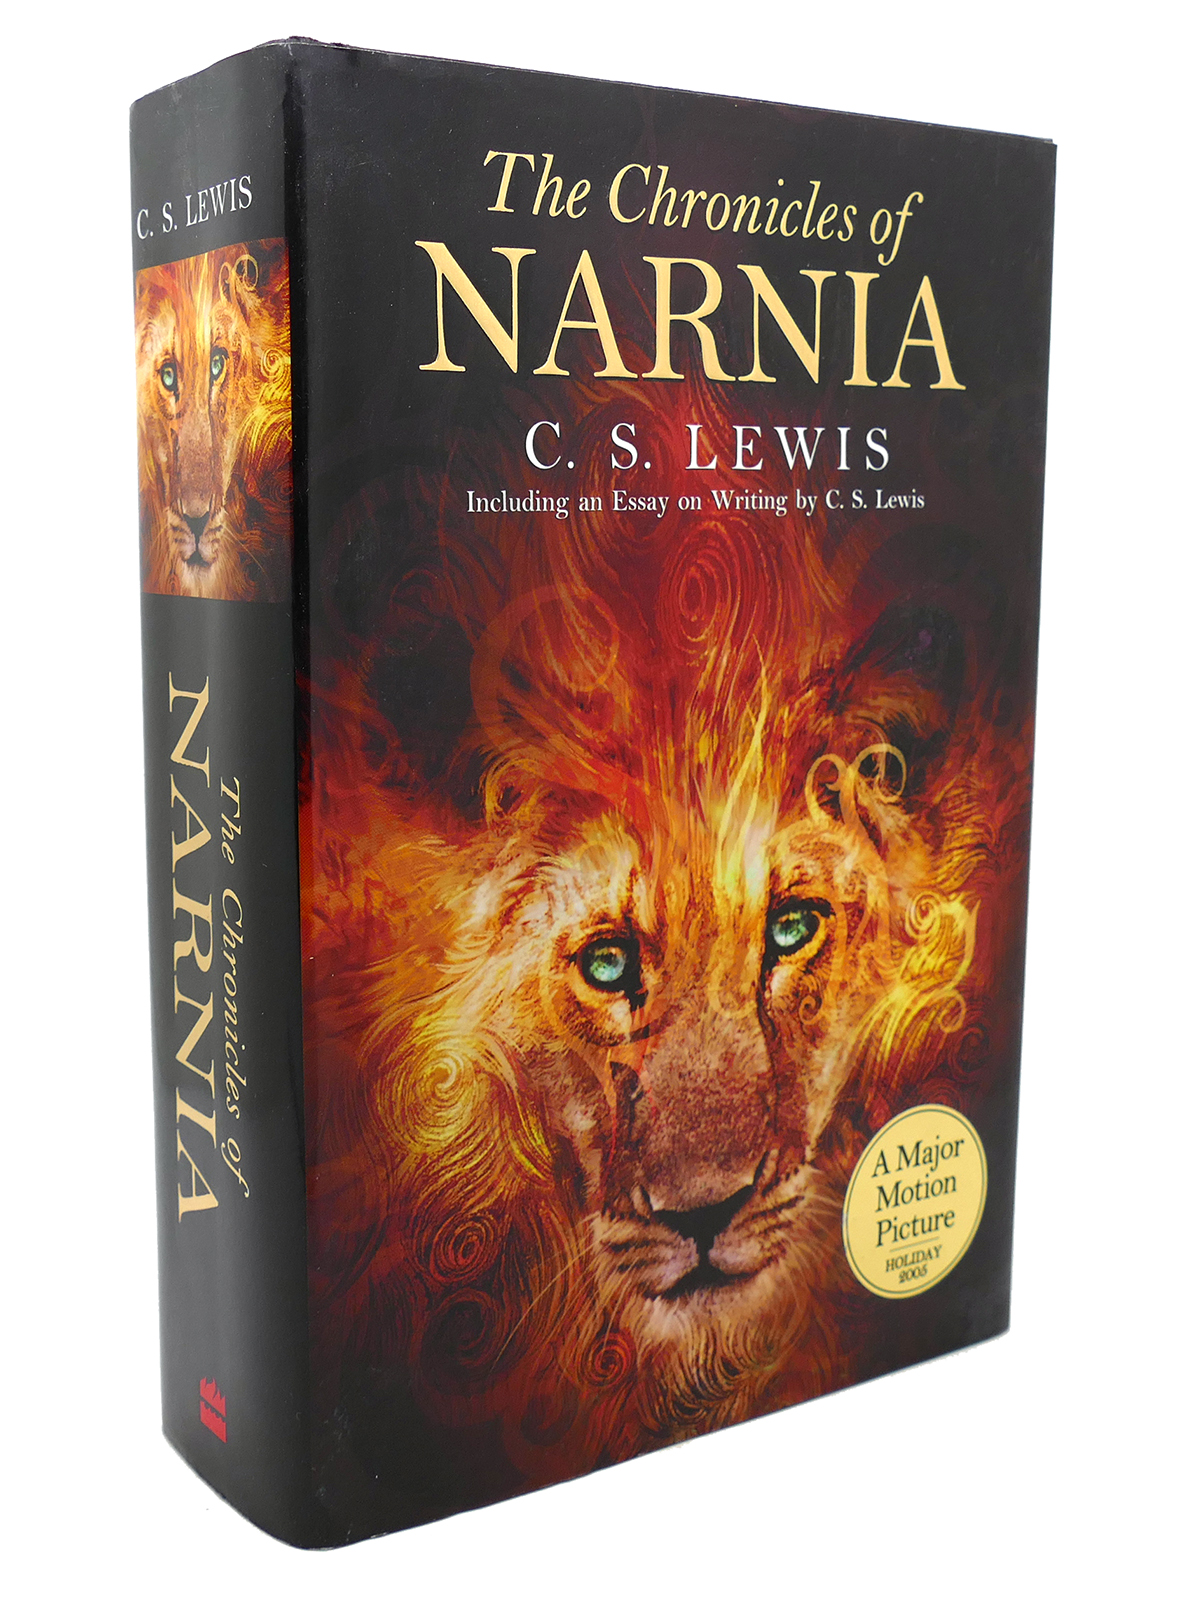 Lewis New Sealed Rare Leather Bound Hardback The Chronicles Of Narnia by C.S